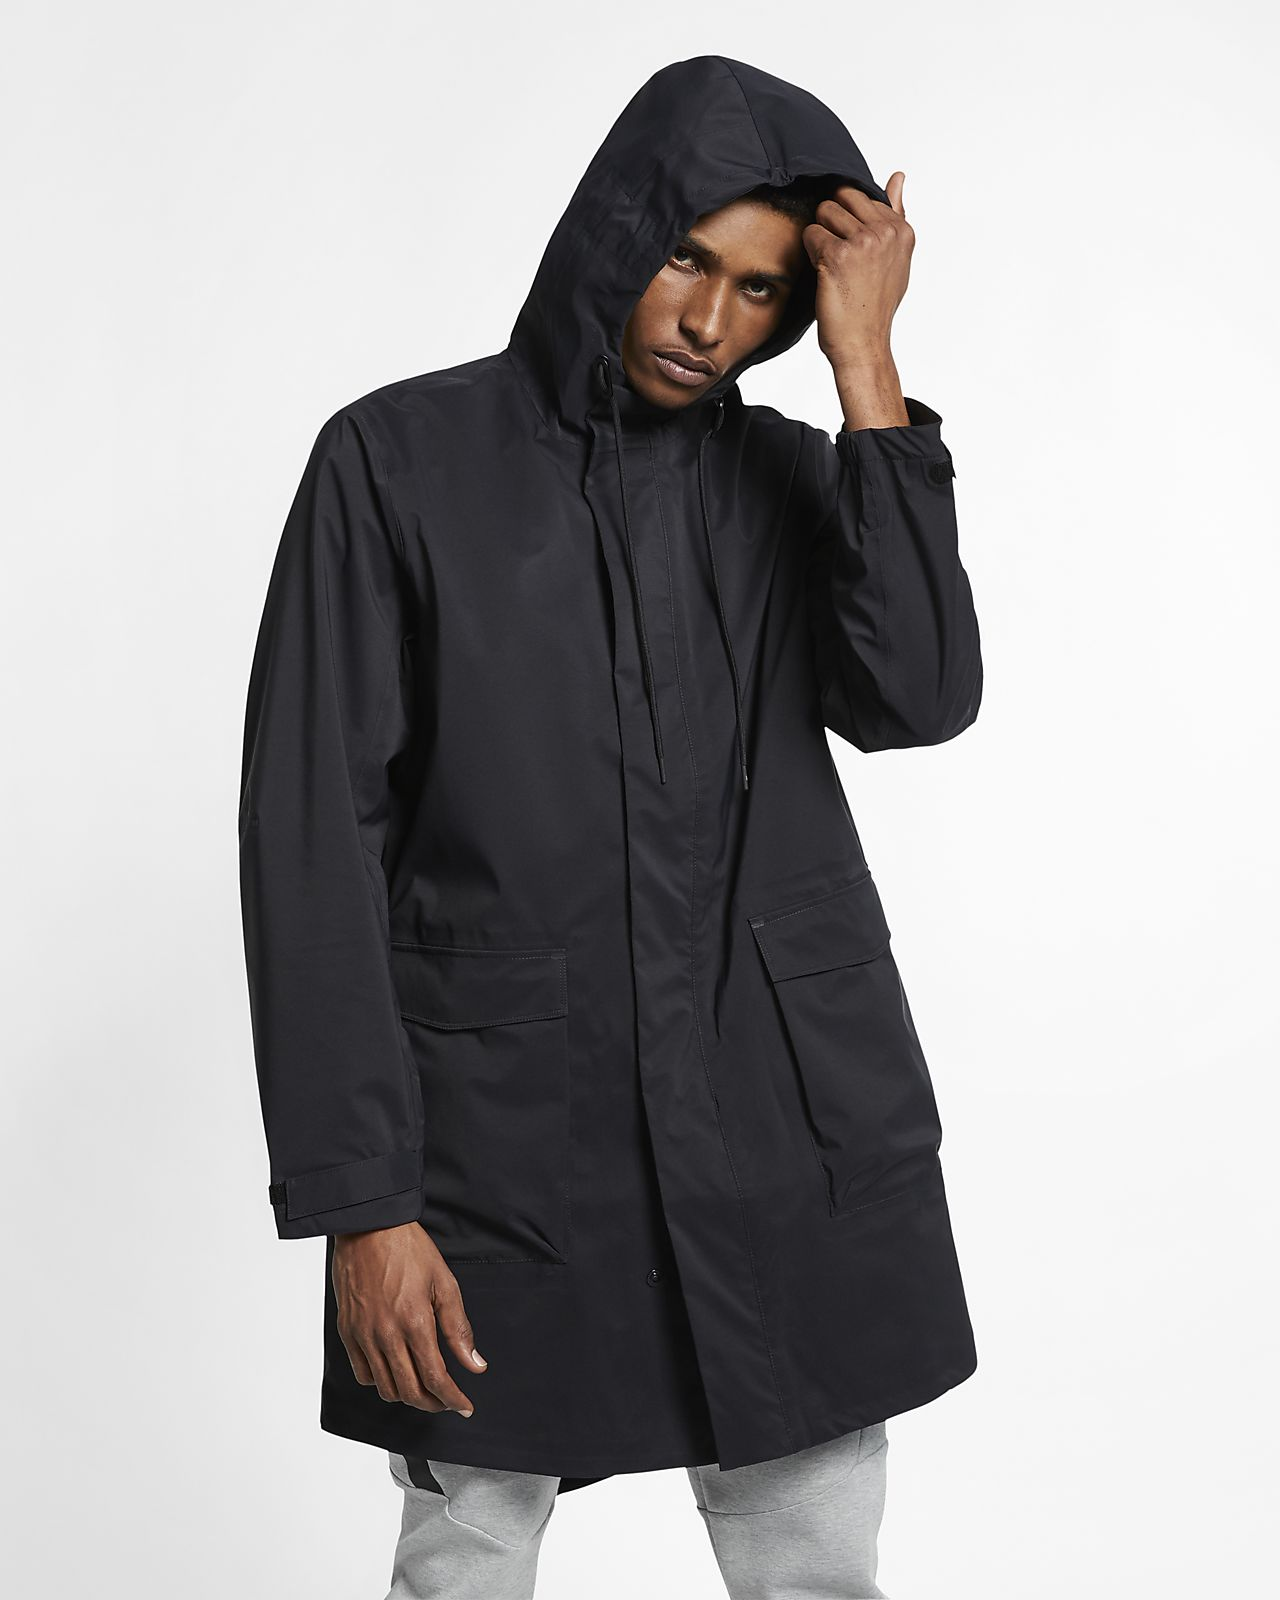 NikeLab Collection Men's Parka